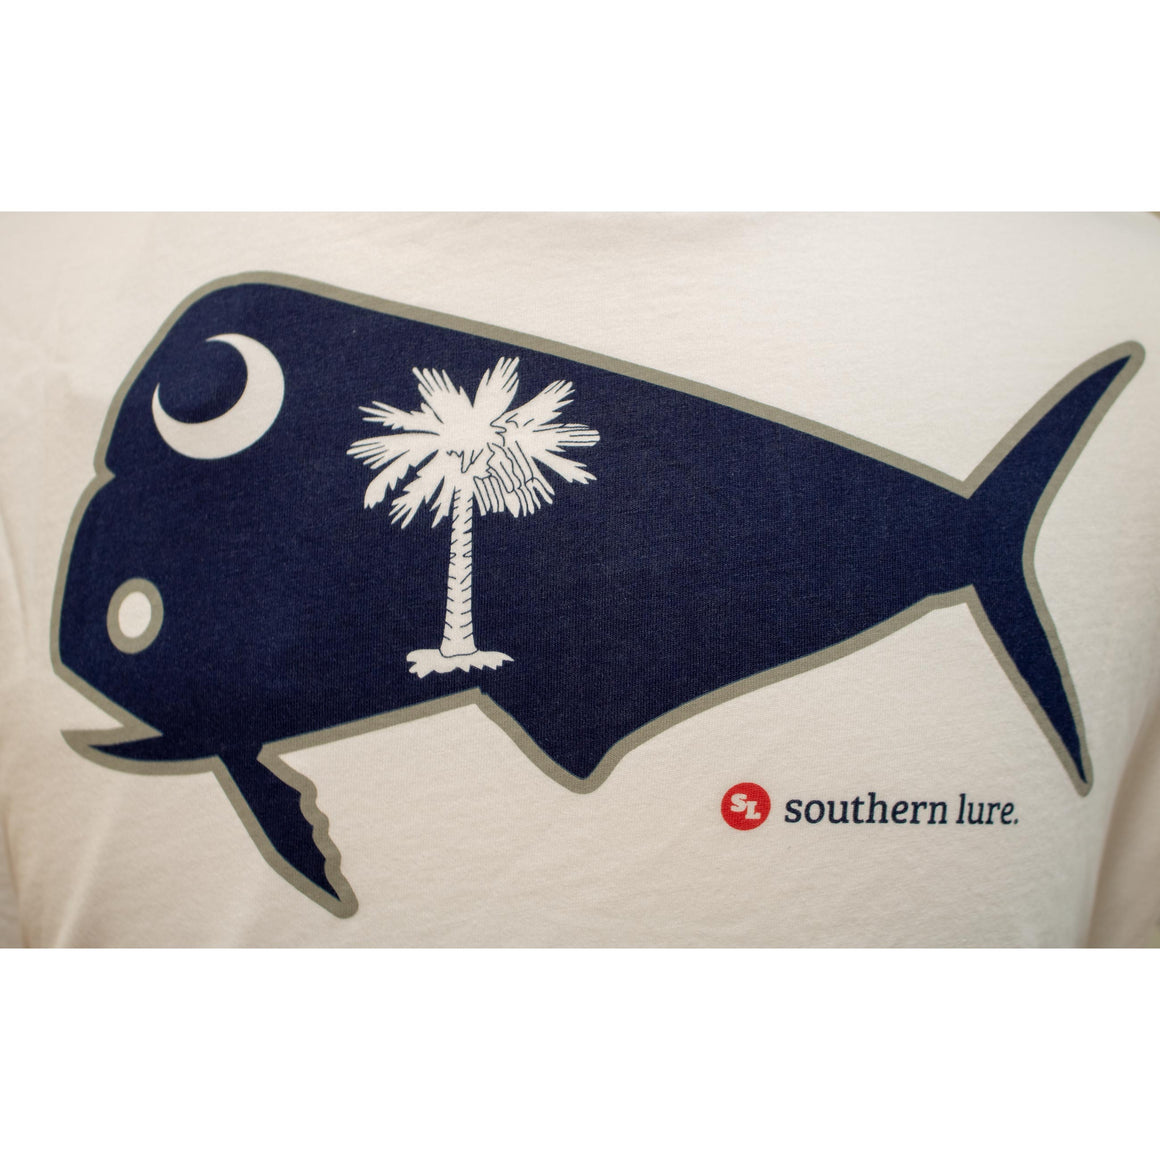 S/S Tee - SC Flag Fish - White